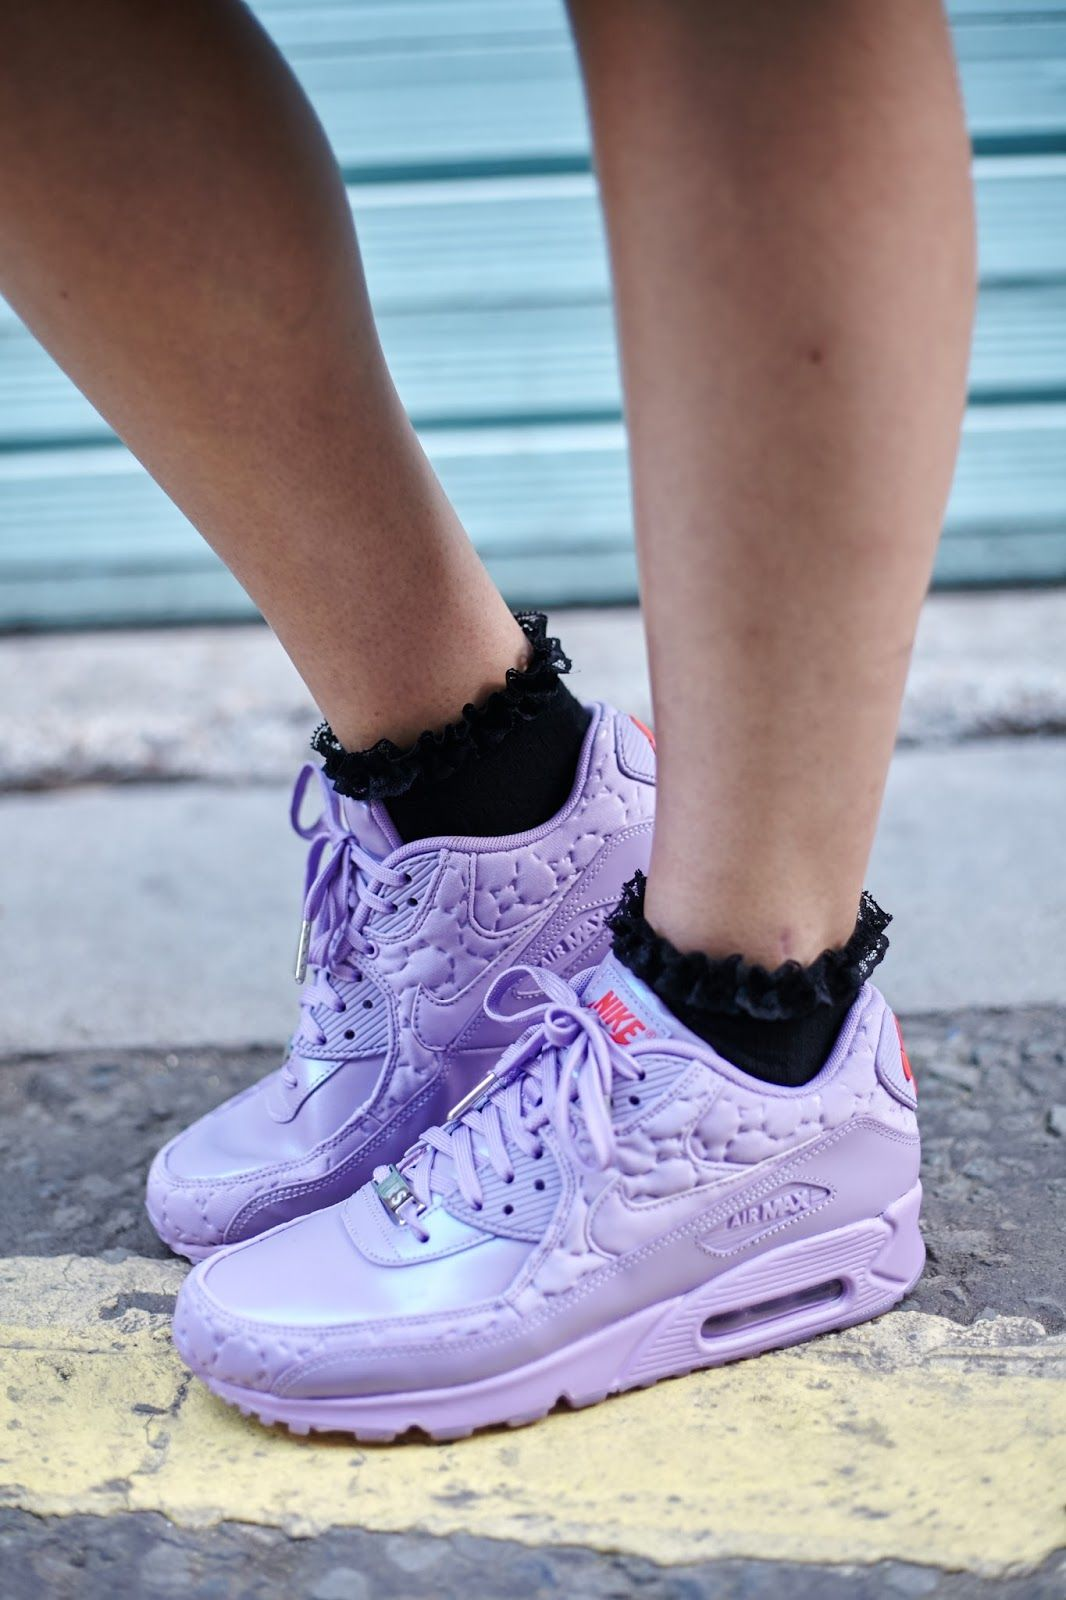 Nike 90 Air A L C Paris S Max Purple 7xxrBwqfE